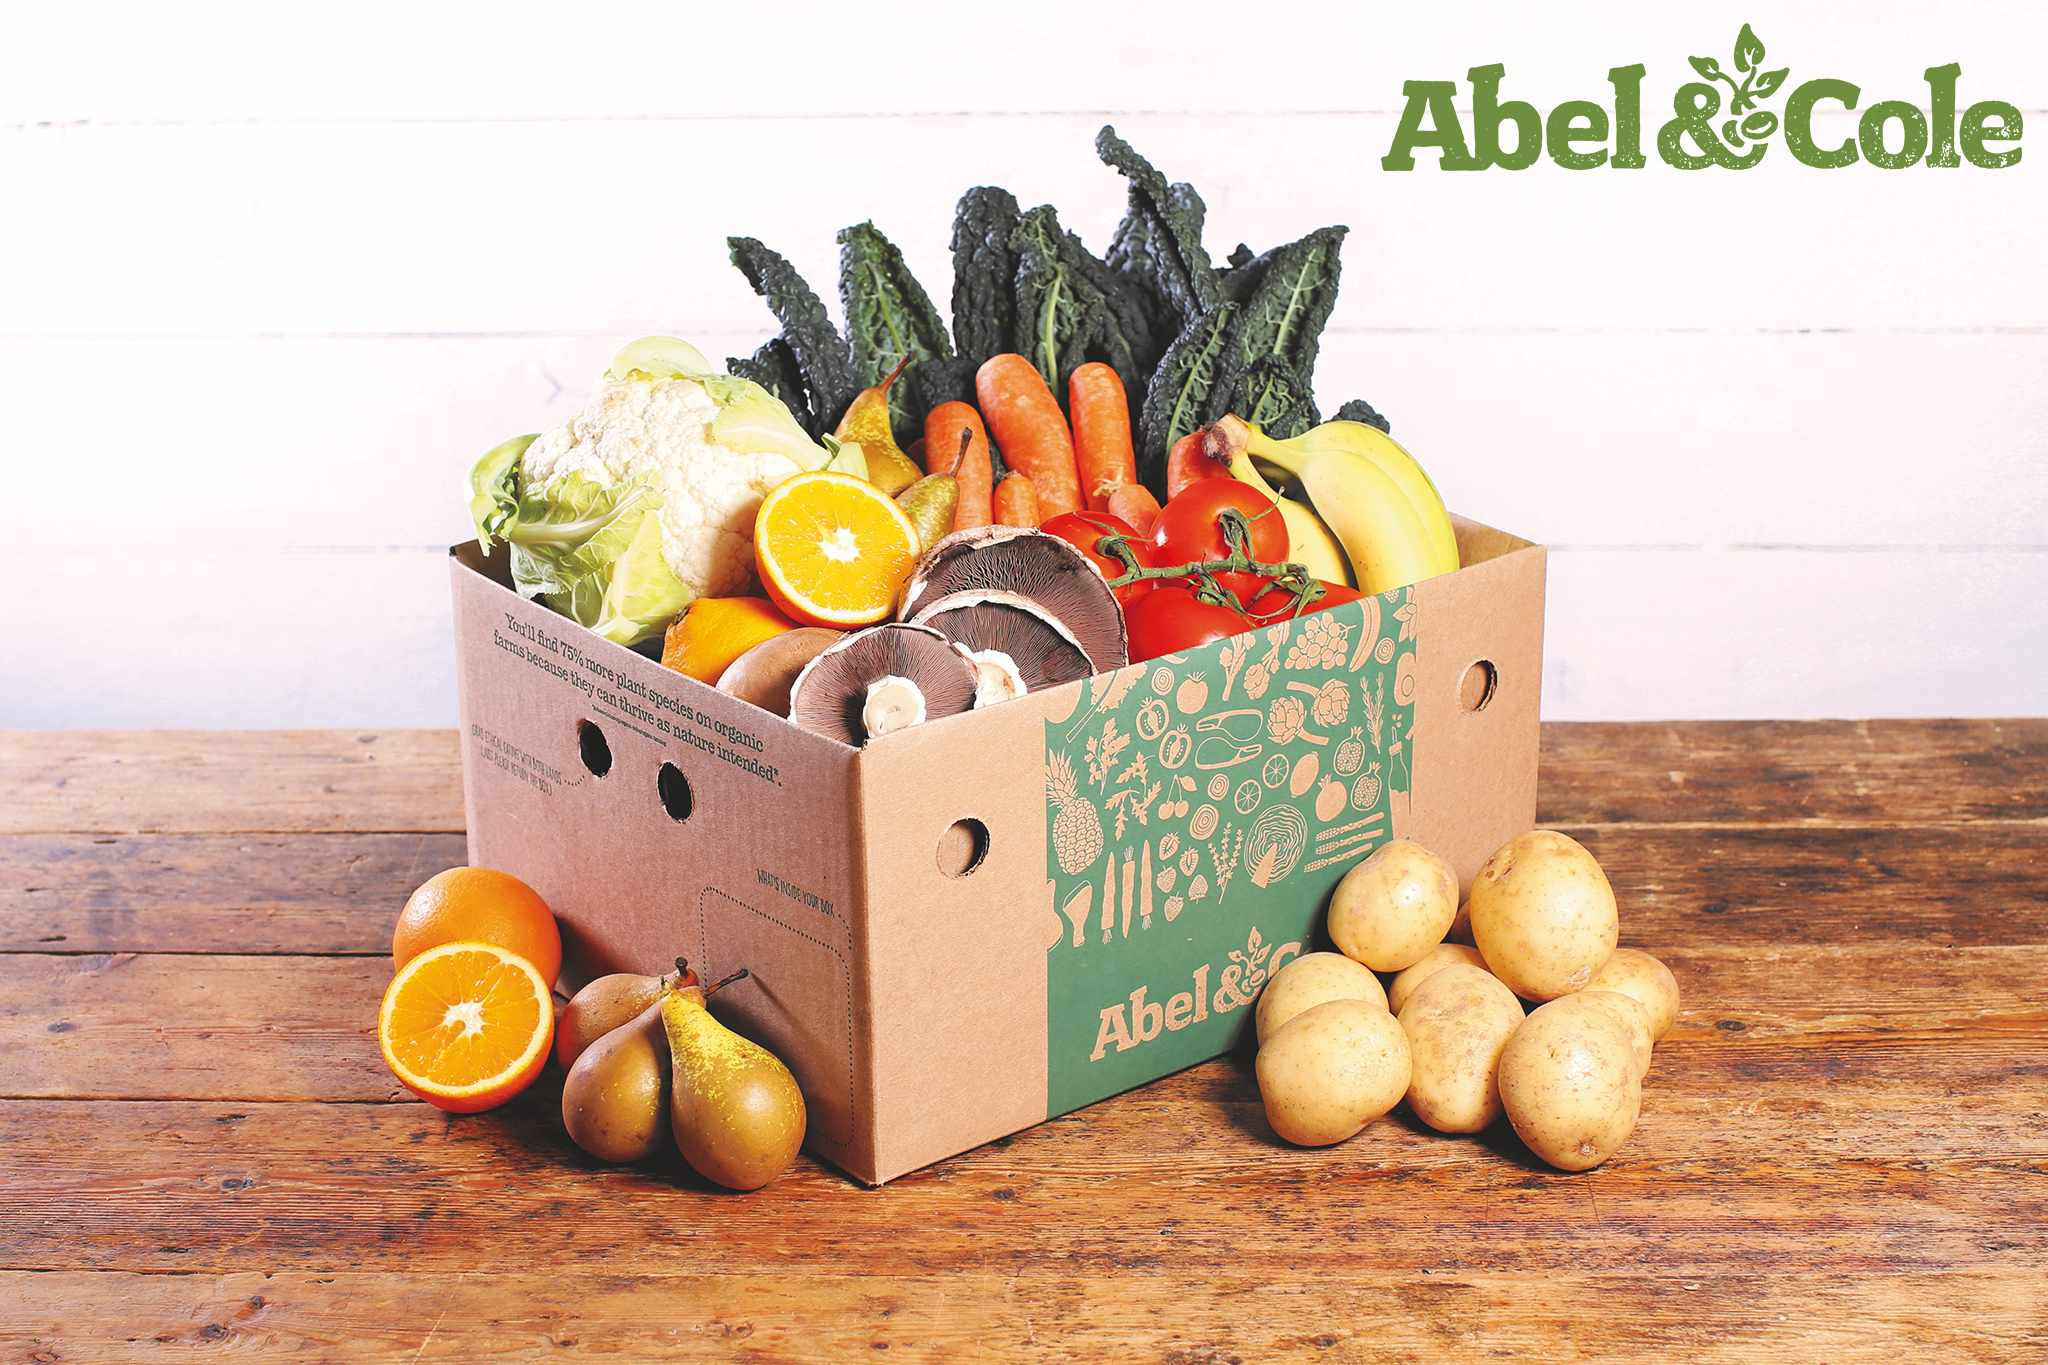 Fruit and Veg boxes from Abel & Cole